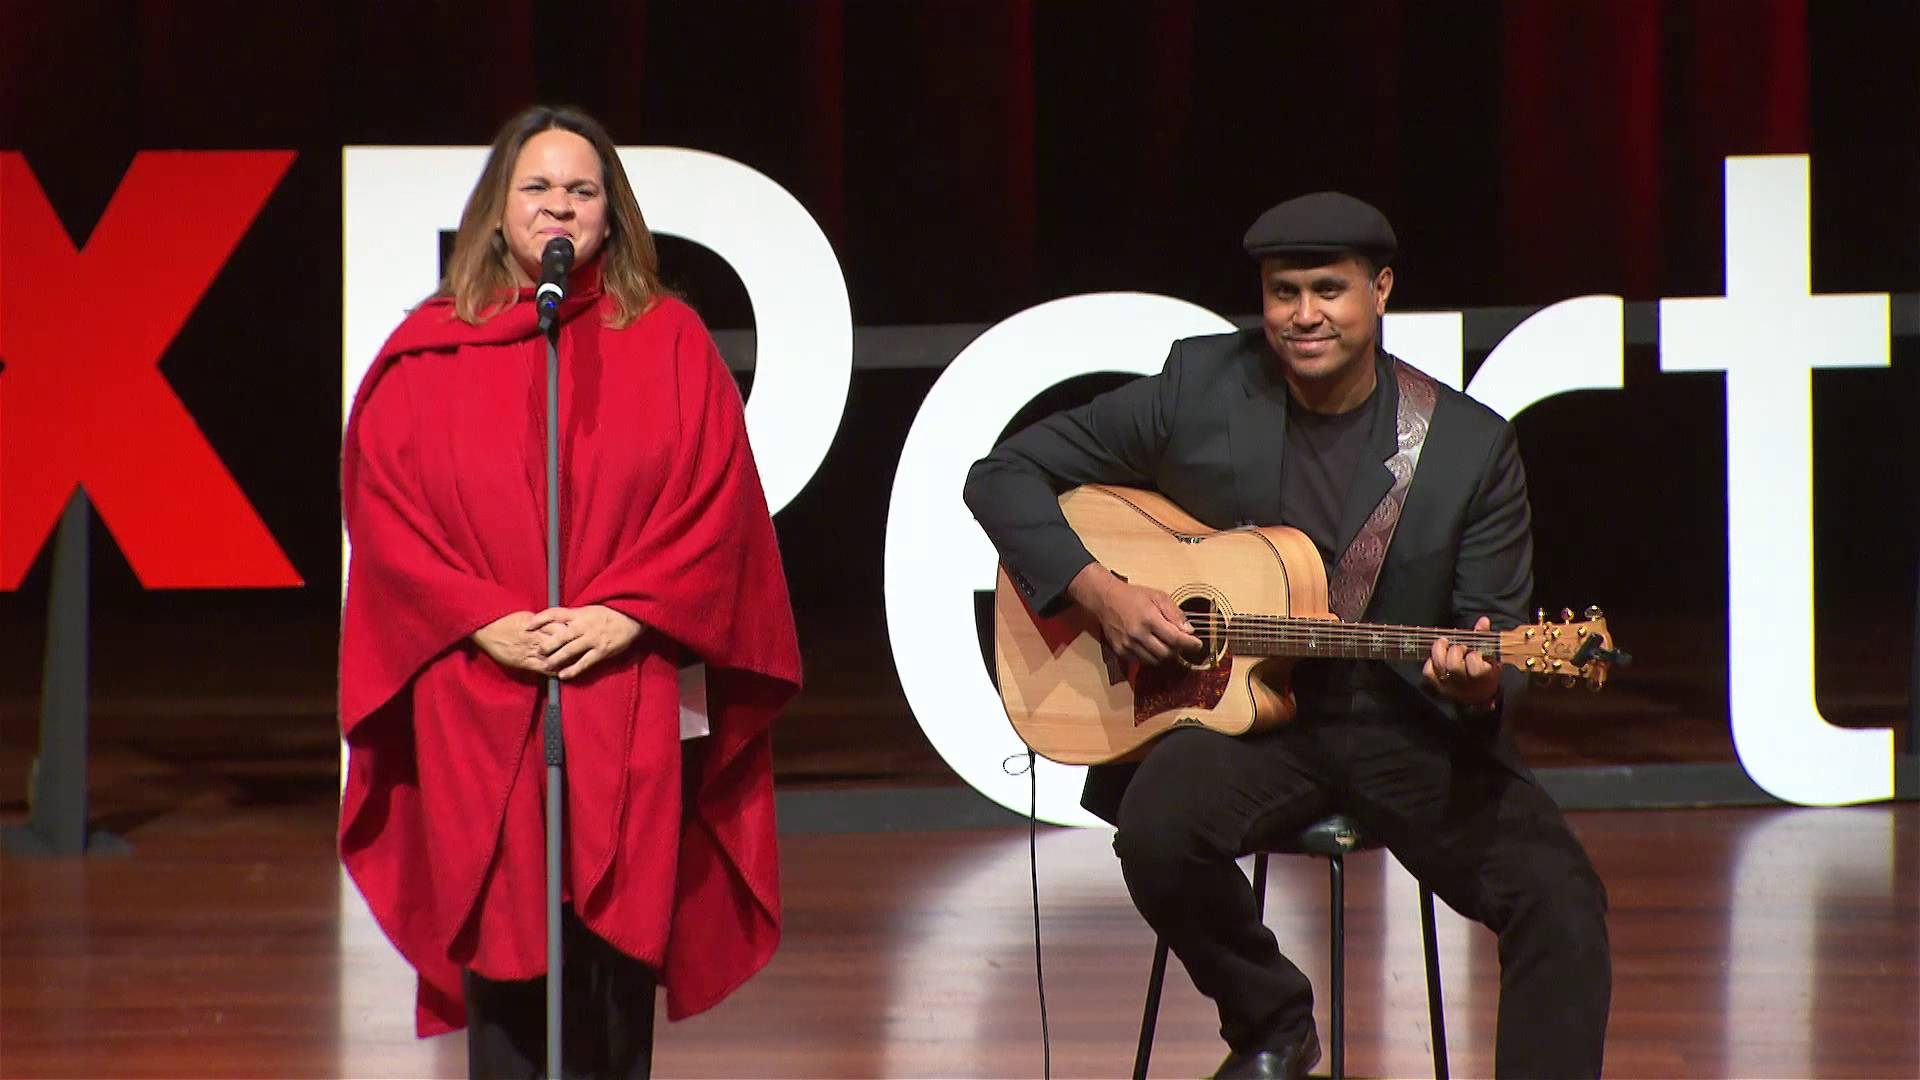 Kalyakoorl and Boorda | Gina Williams and Guy Ghouse | TEDxPerth